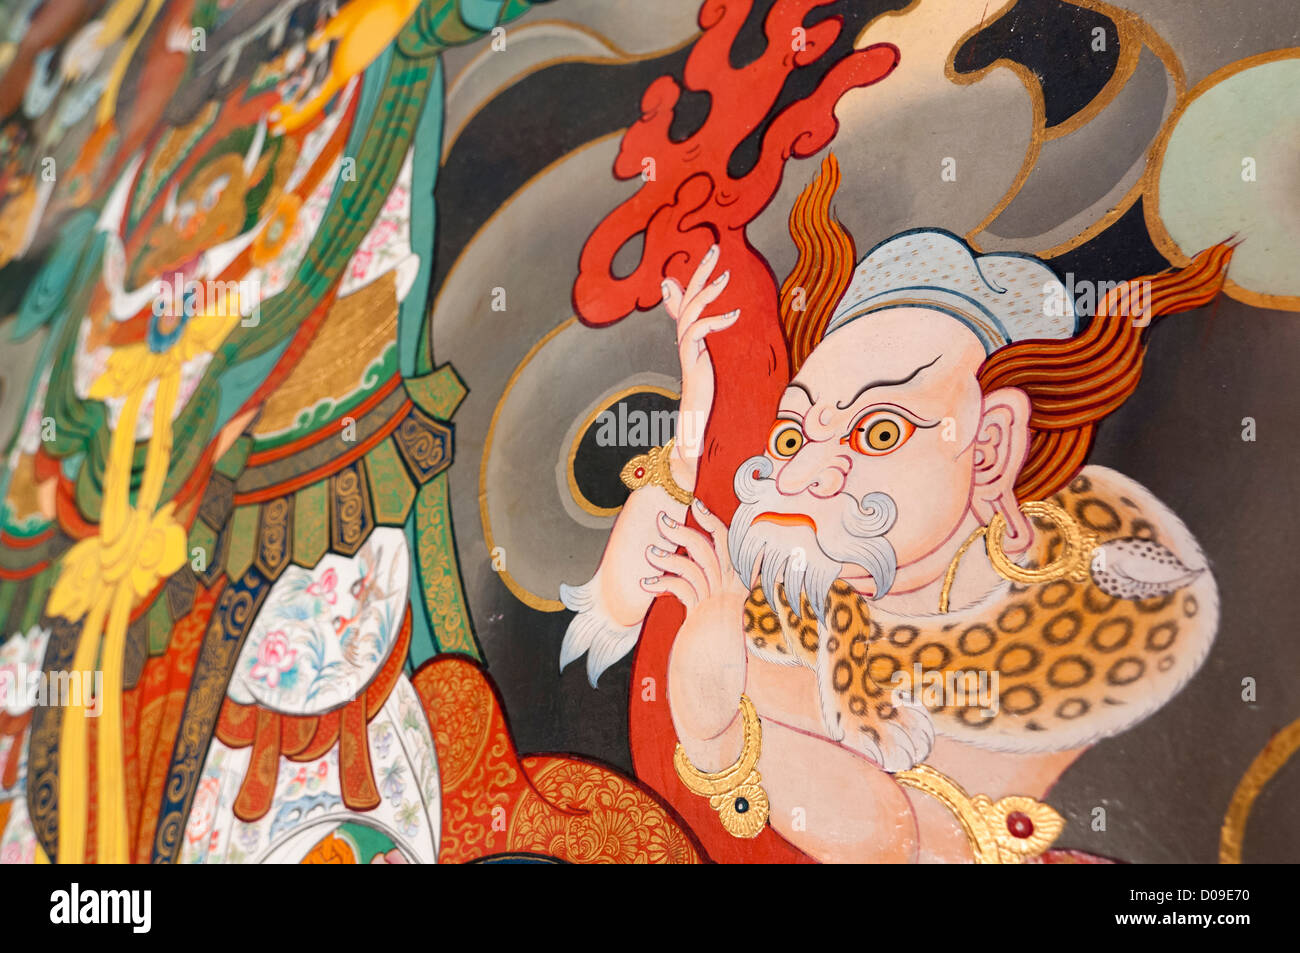 Detail from painting of Buddhist pantheon at temple entrance, Reting Monastery, Tibet, China - Stock Image